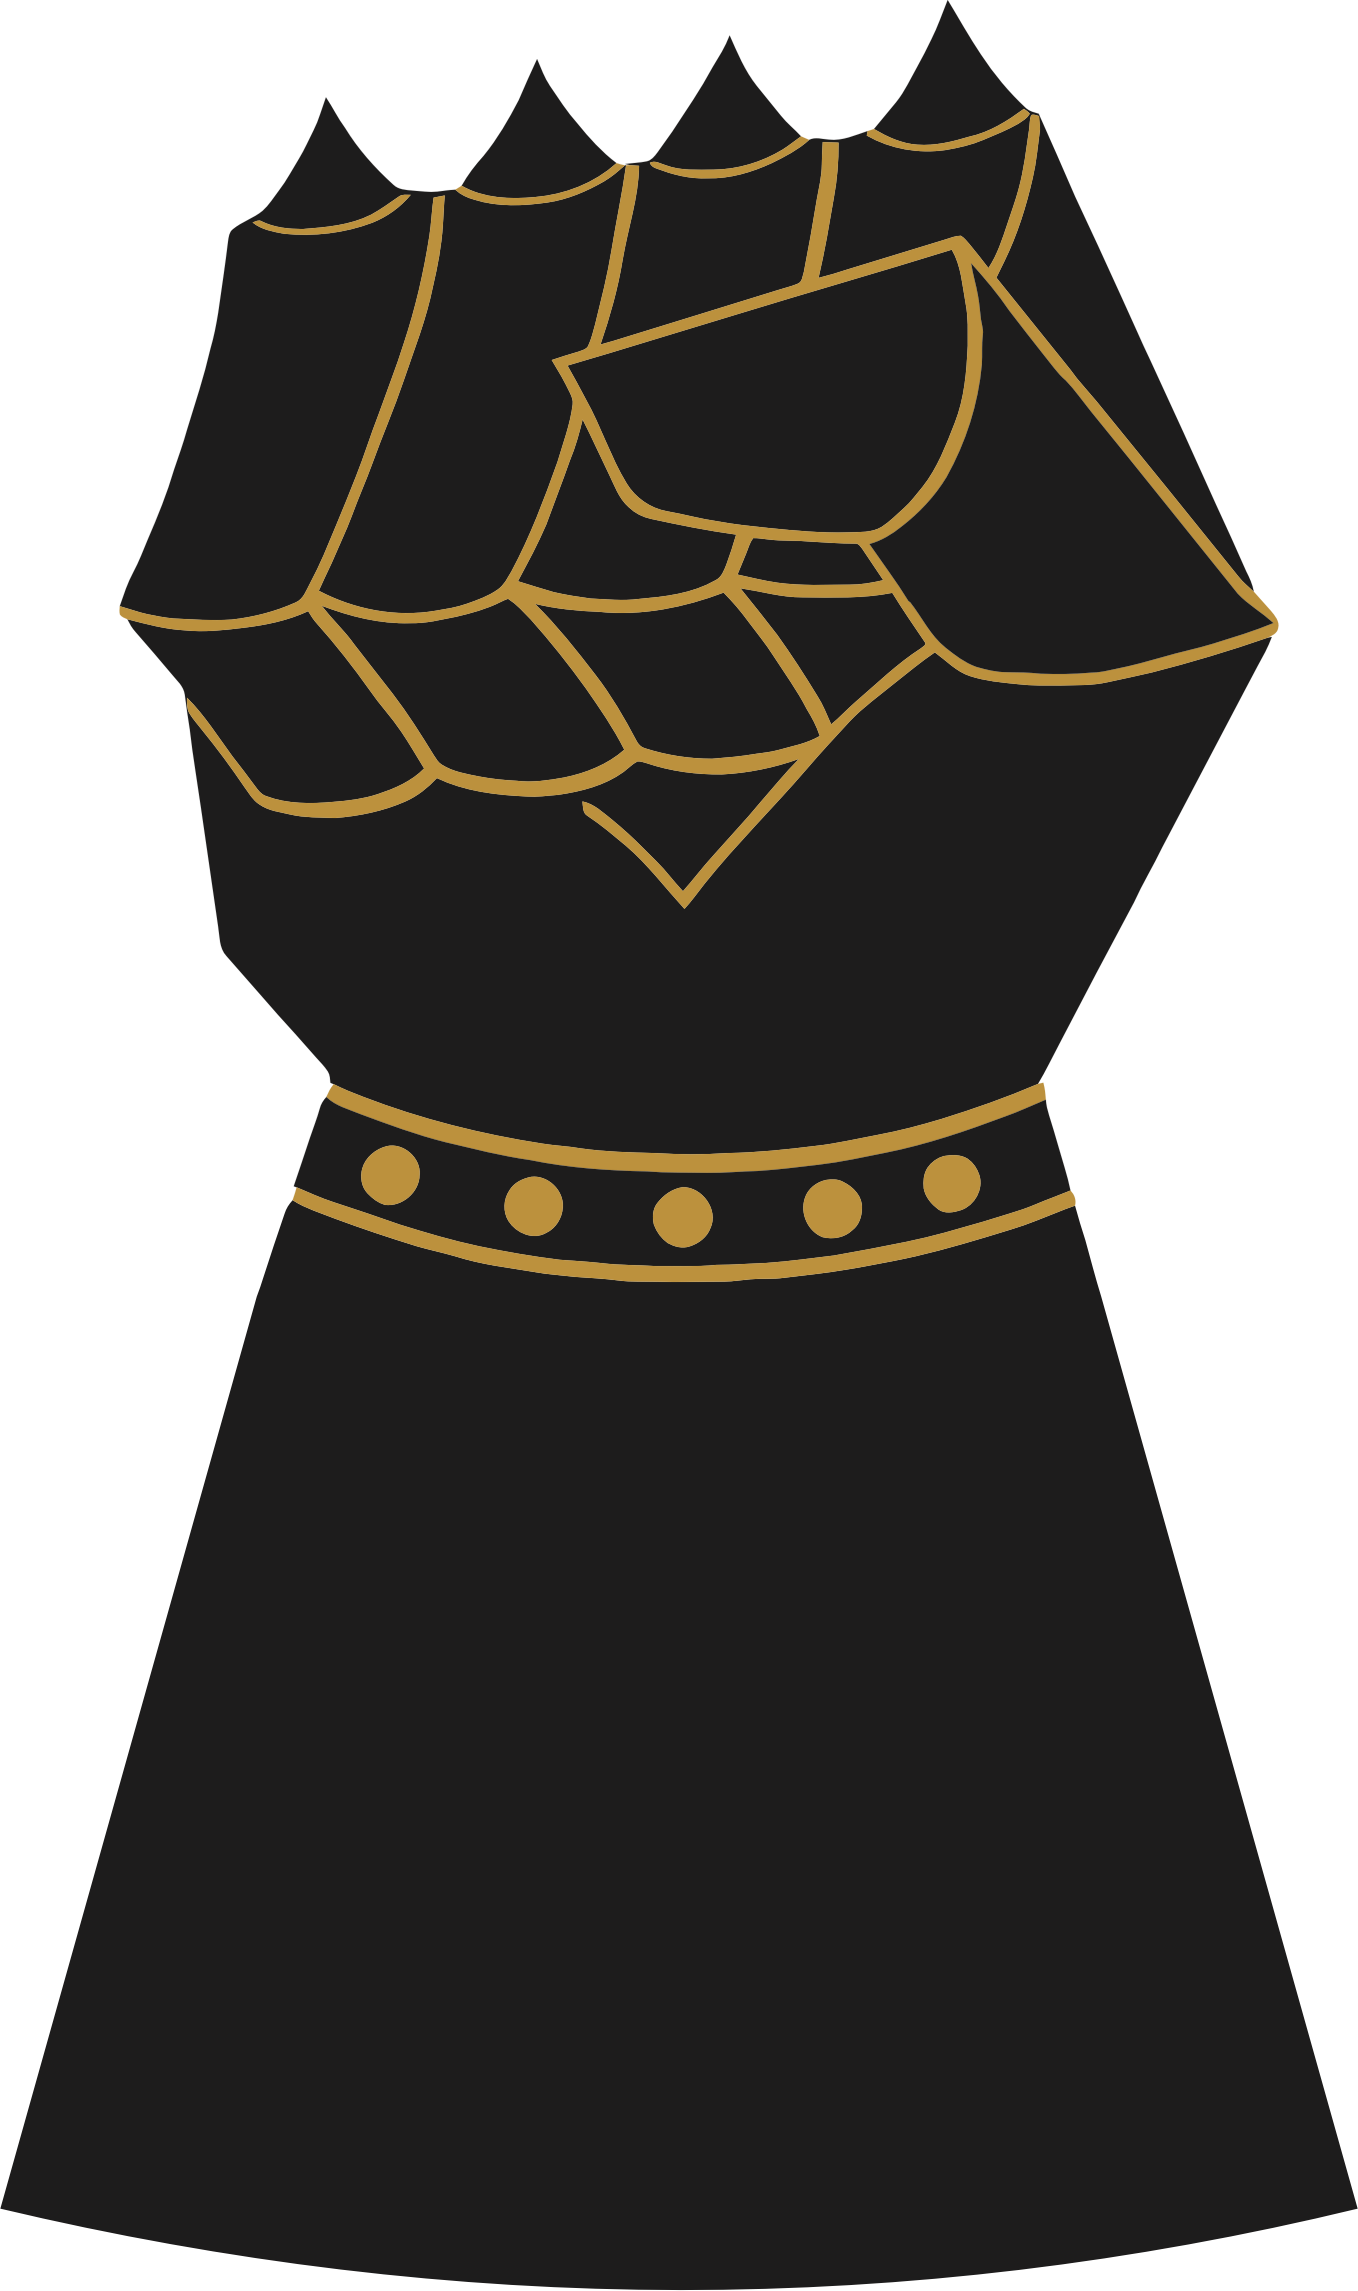 Vintage Gauntlet Fist by GDJ